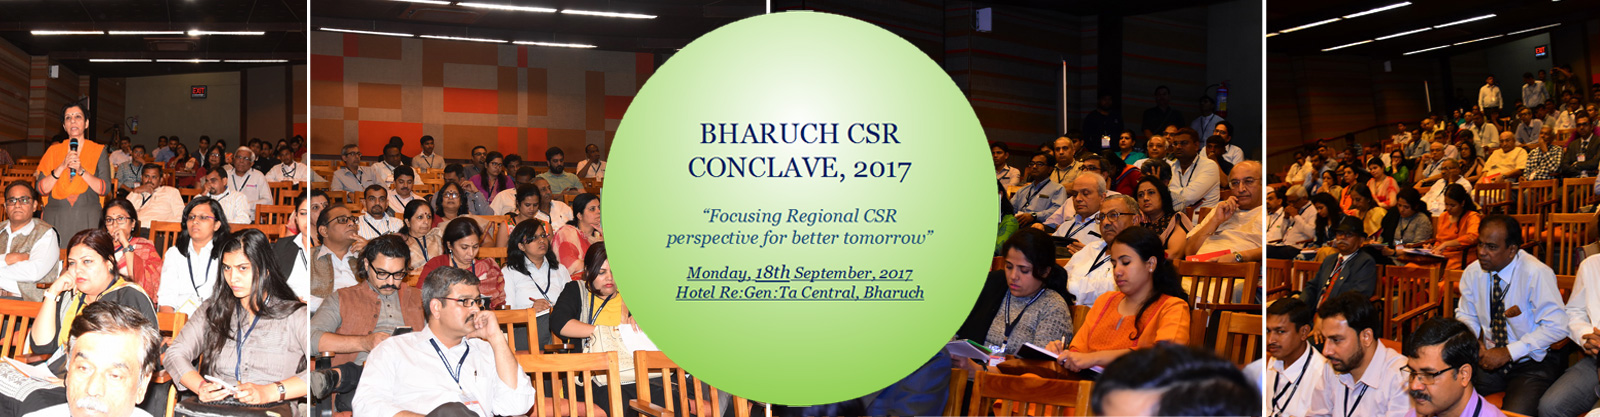 Bharuch CSR Conclave